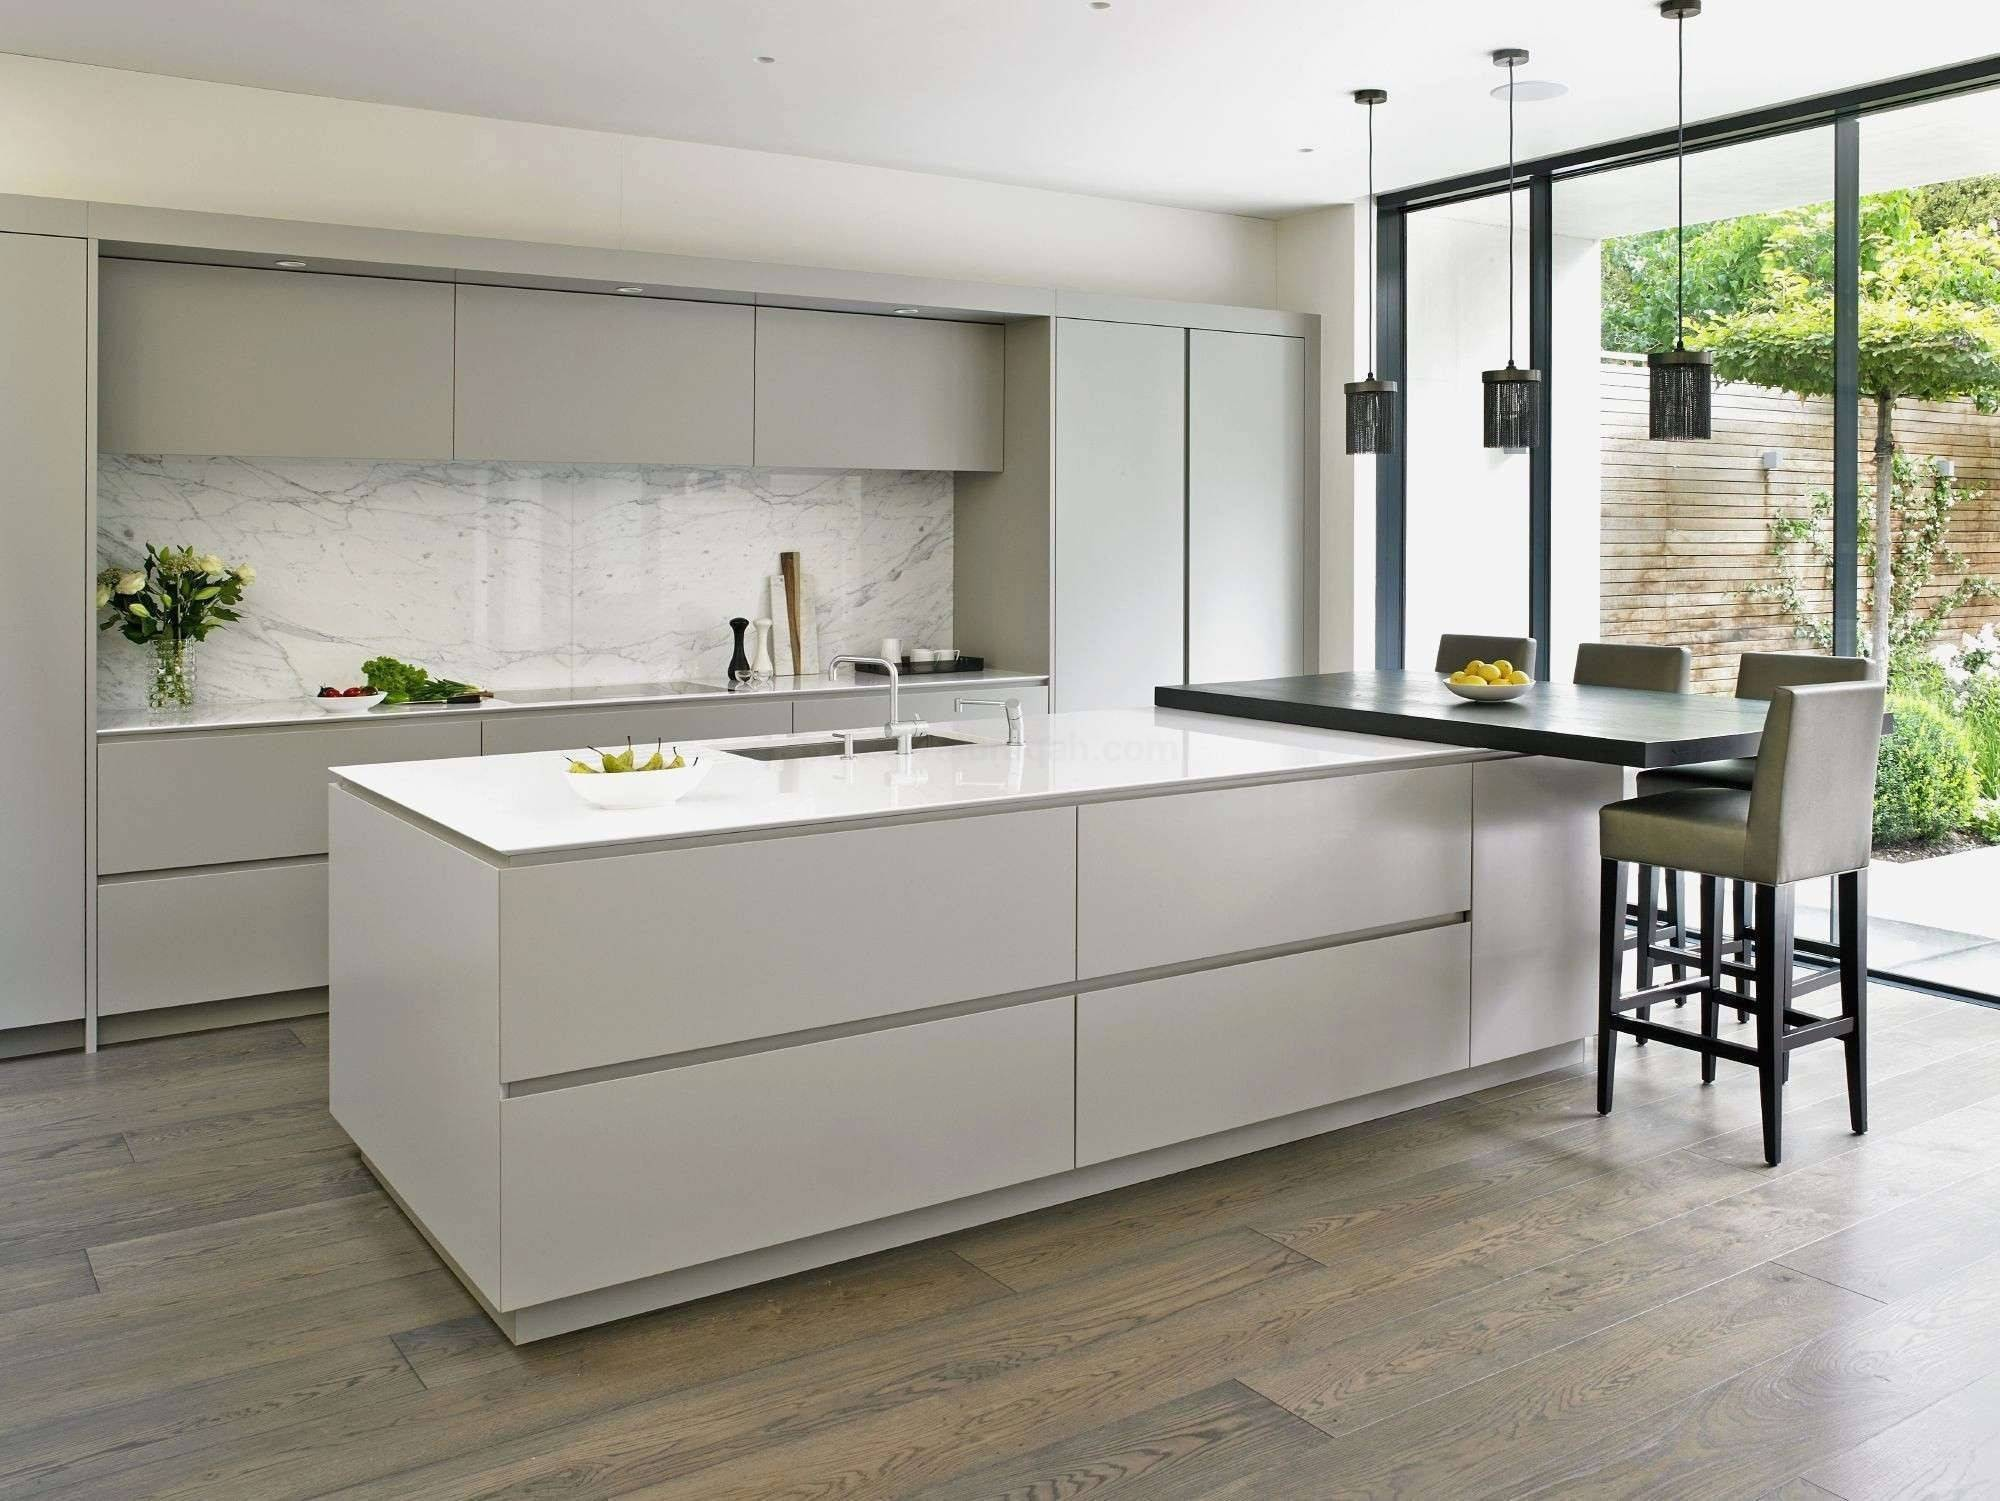 best hardwood floor color with white cabinets of inspirational white kitchen cabinets with grey island blogbeat net in white kitchen cabinets with grey island beautiful kitchen l kitchen l k